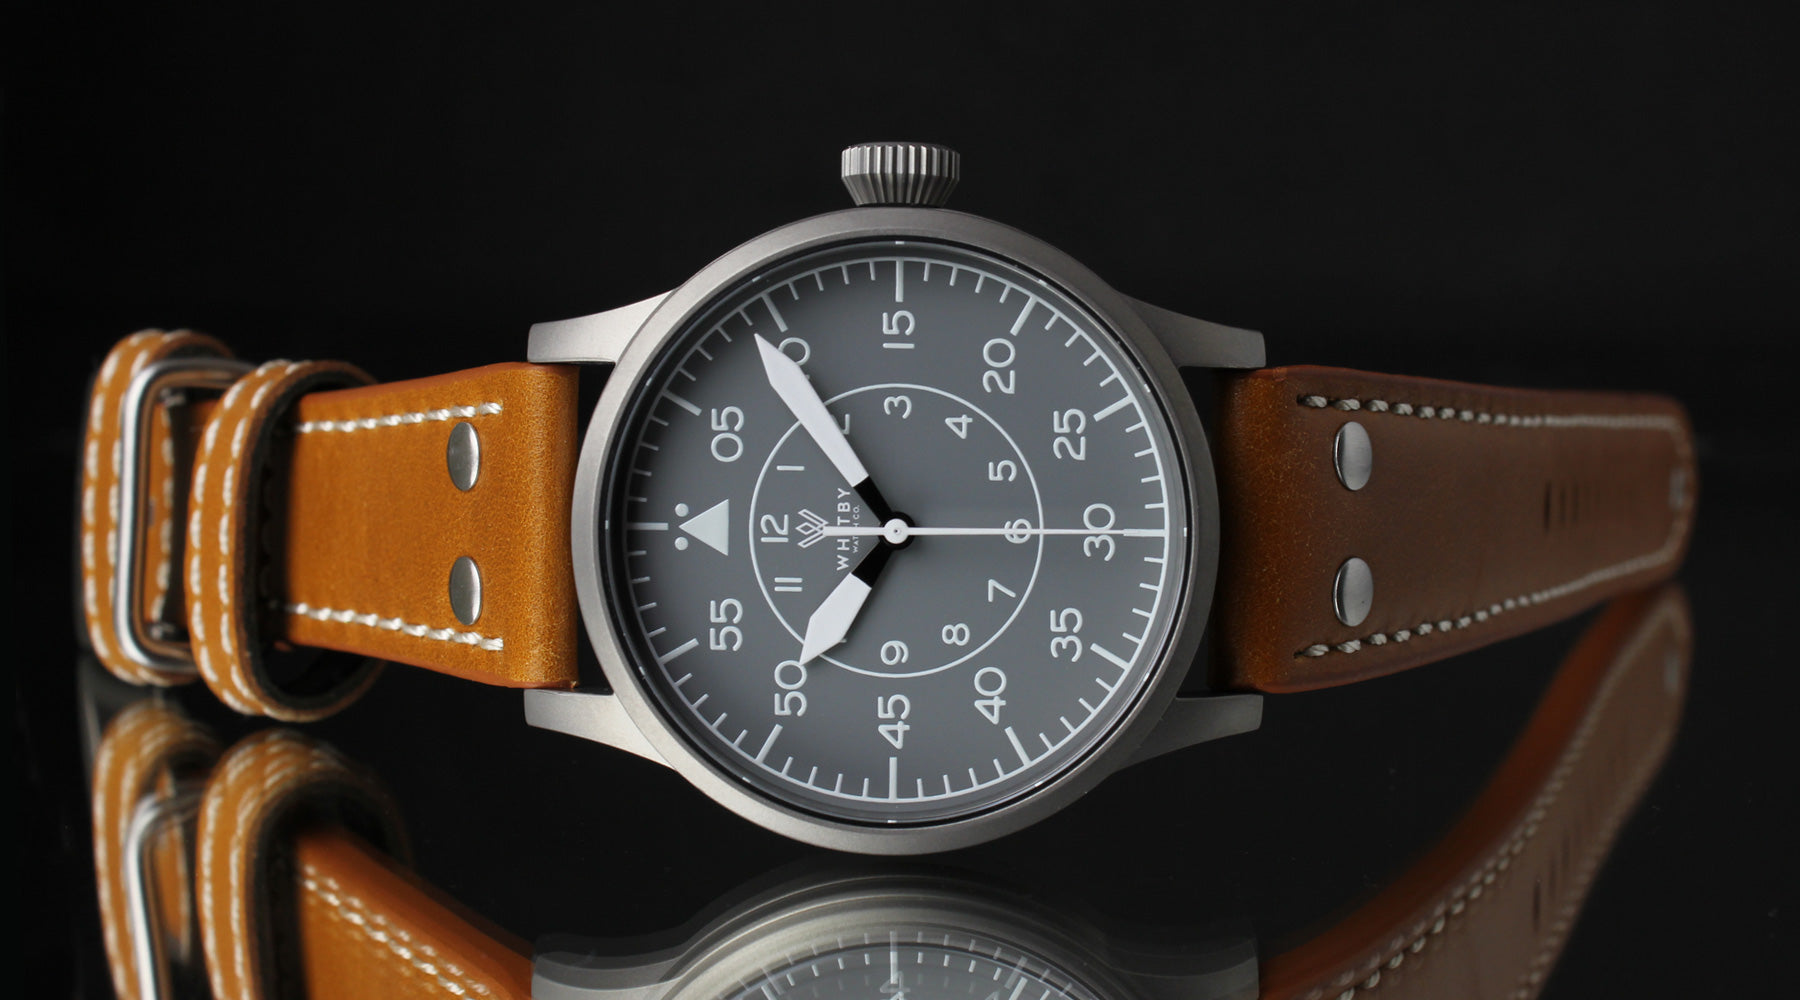 Arrow Pilot Watches